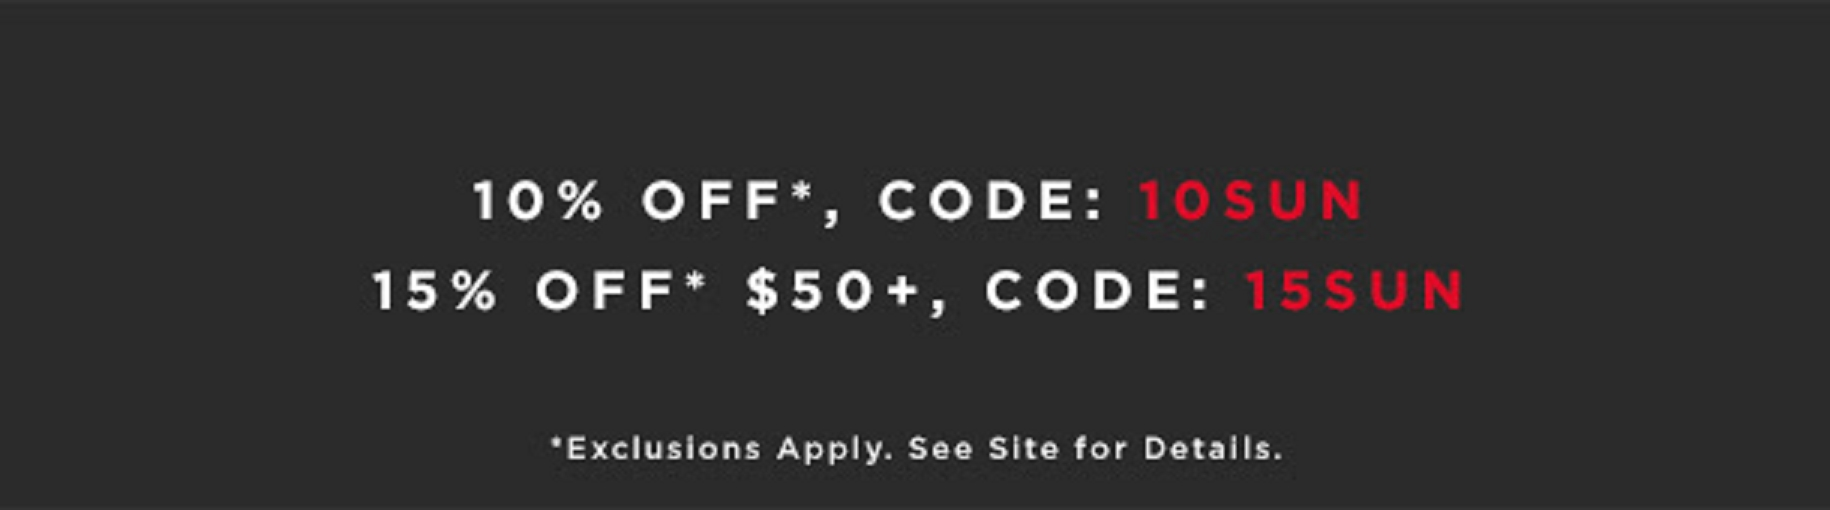 Dr jays coupon code